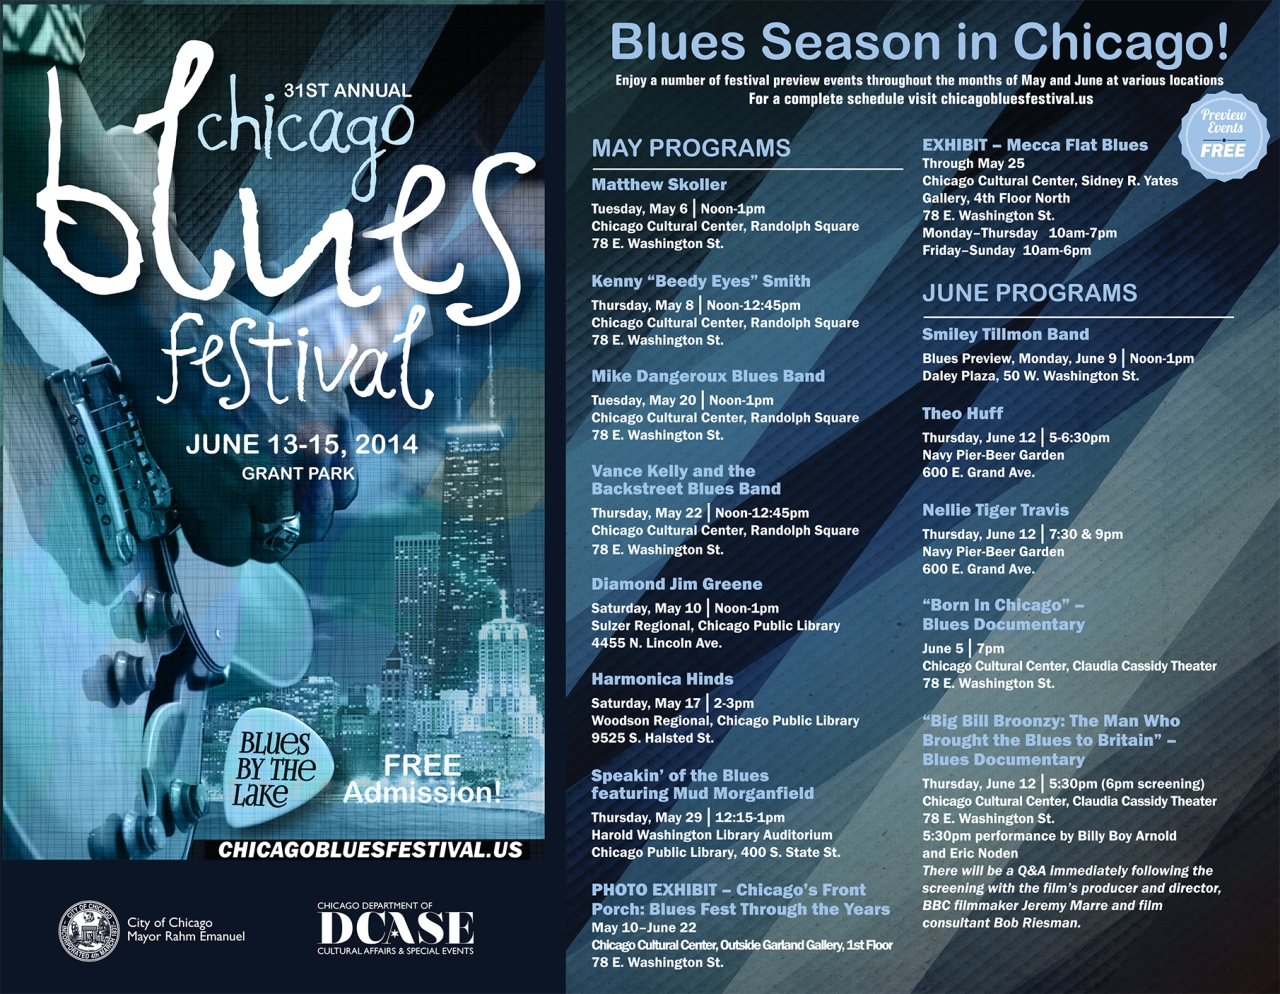 Chicago Blues Festival Blues by the Lake city of chicago org